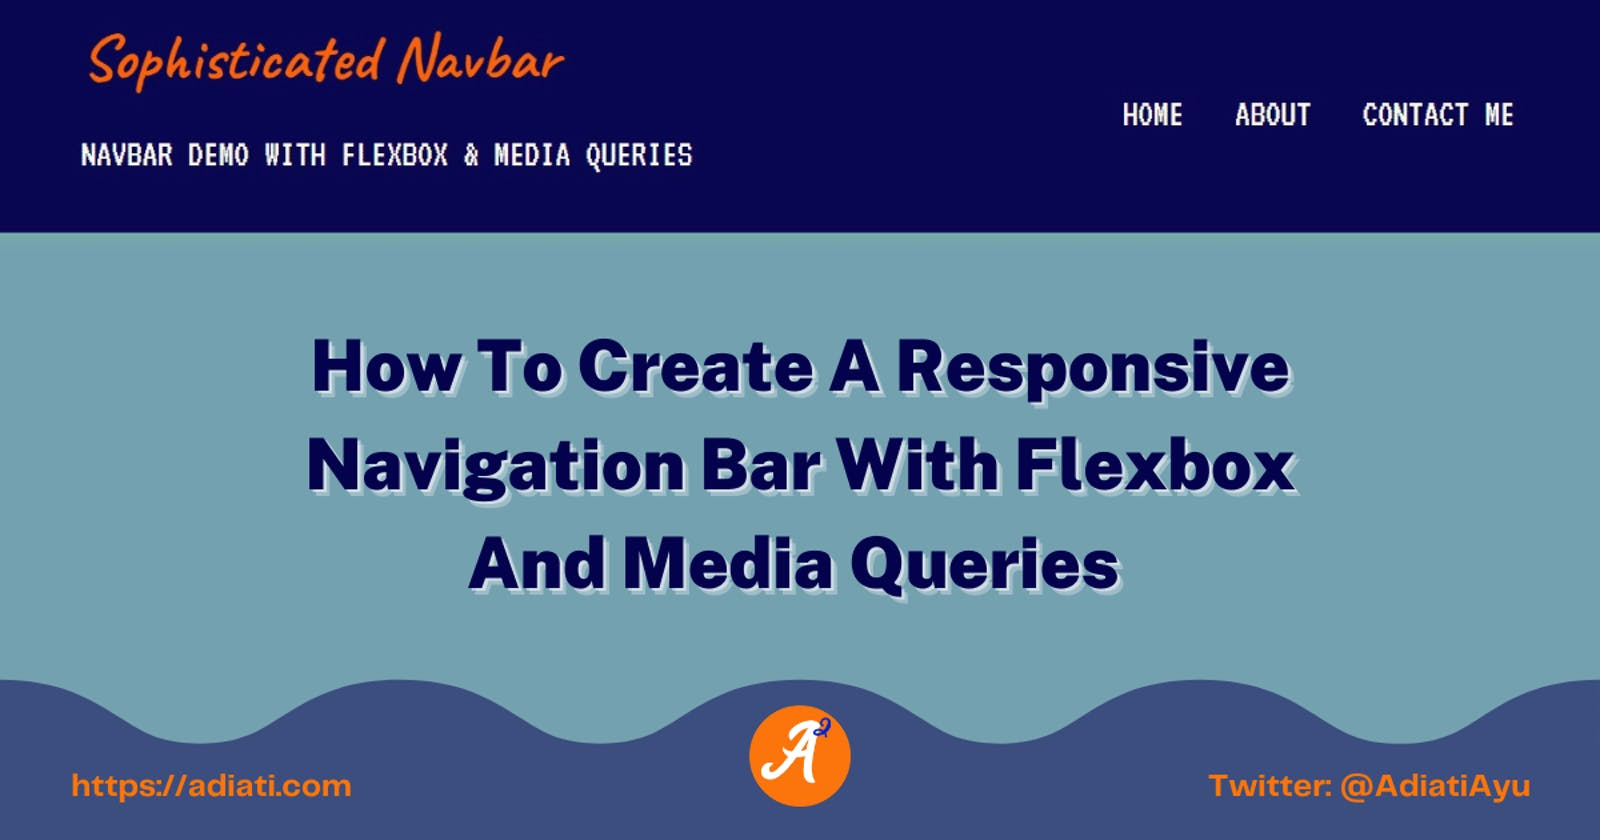 How To Create A Responsive Navigation Bar With Flexbox And Media Queries